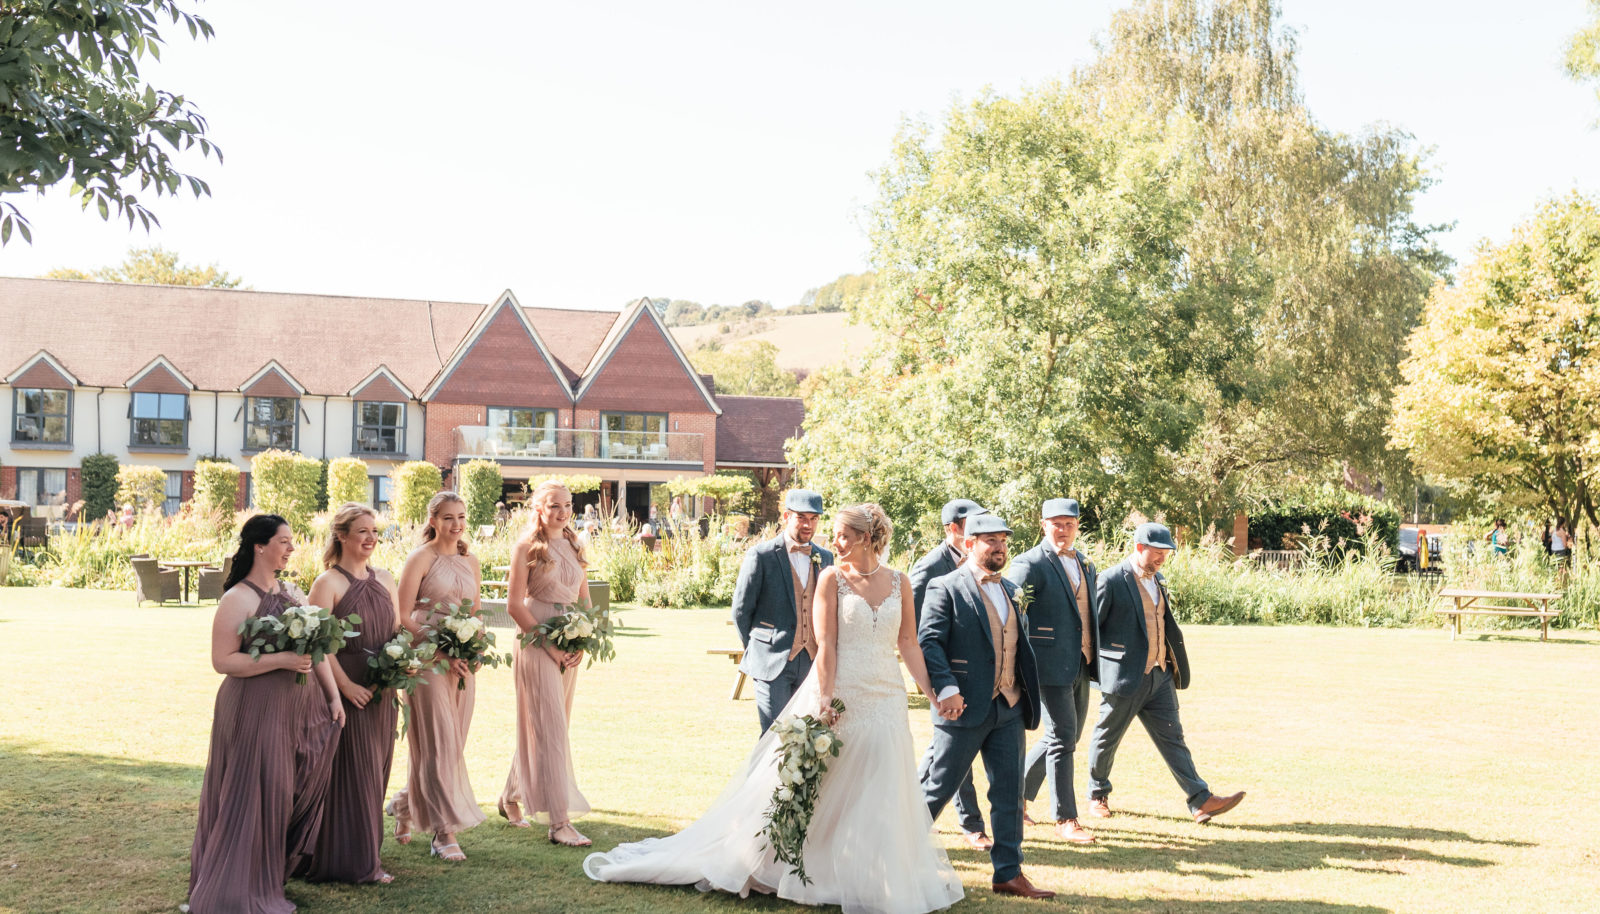 Weddings at The Swan at Streatley